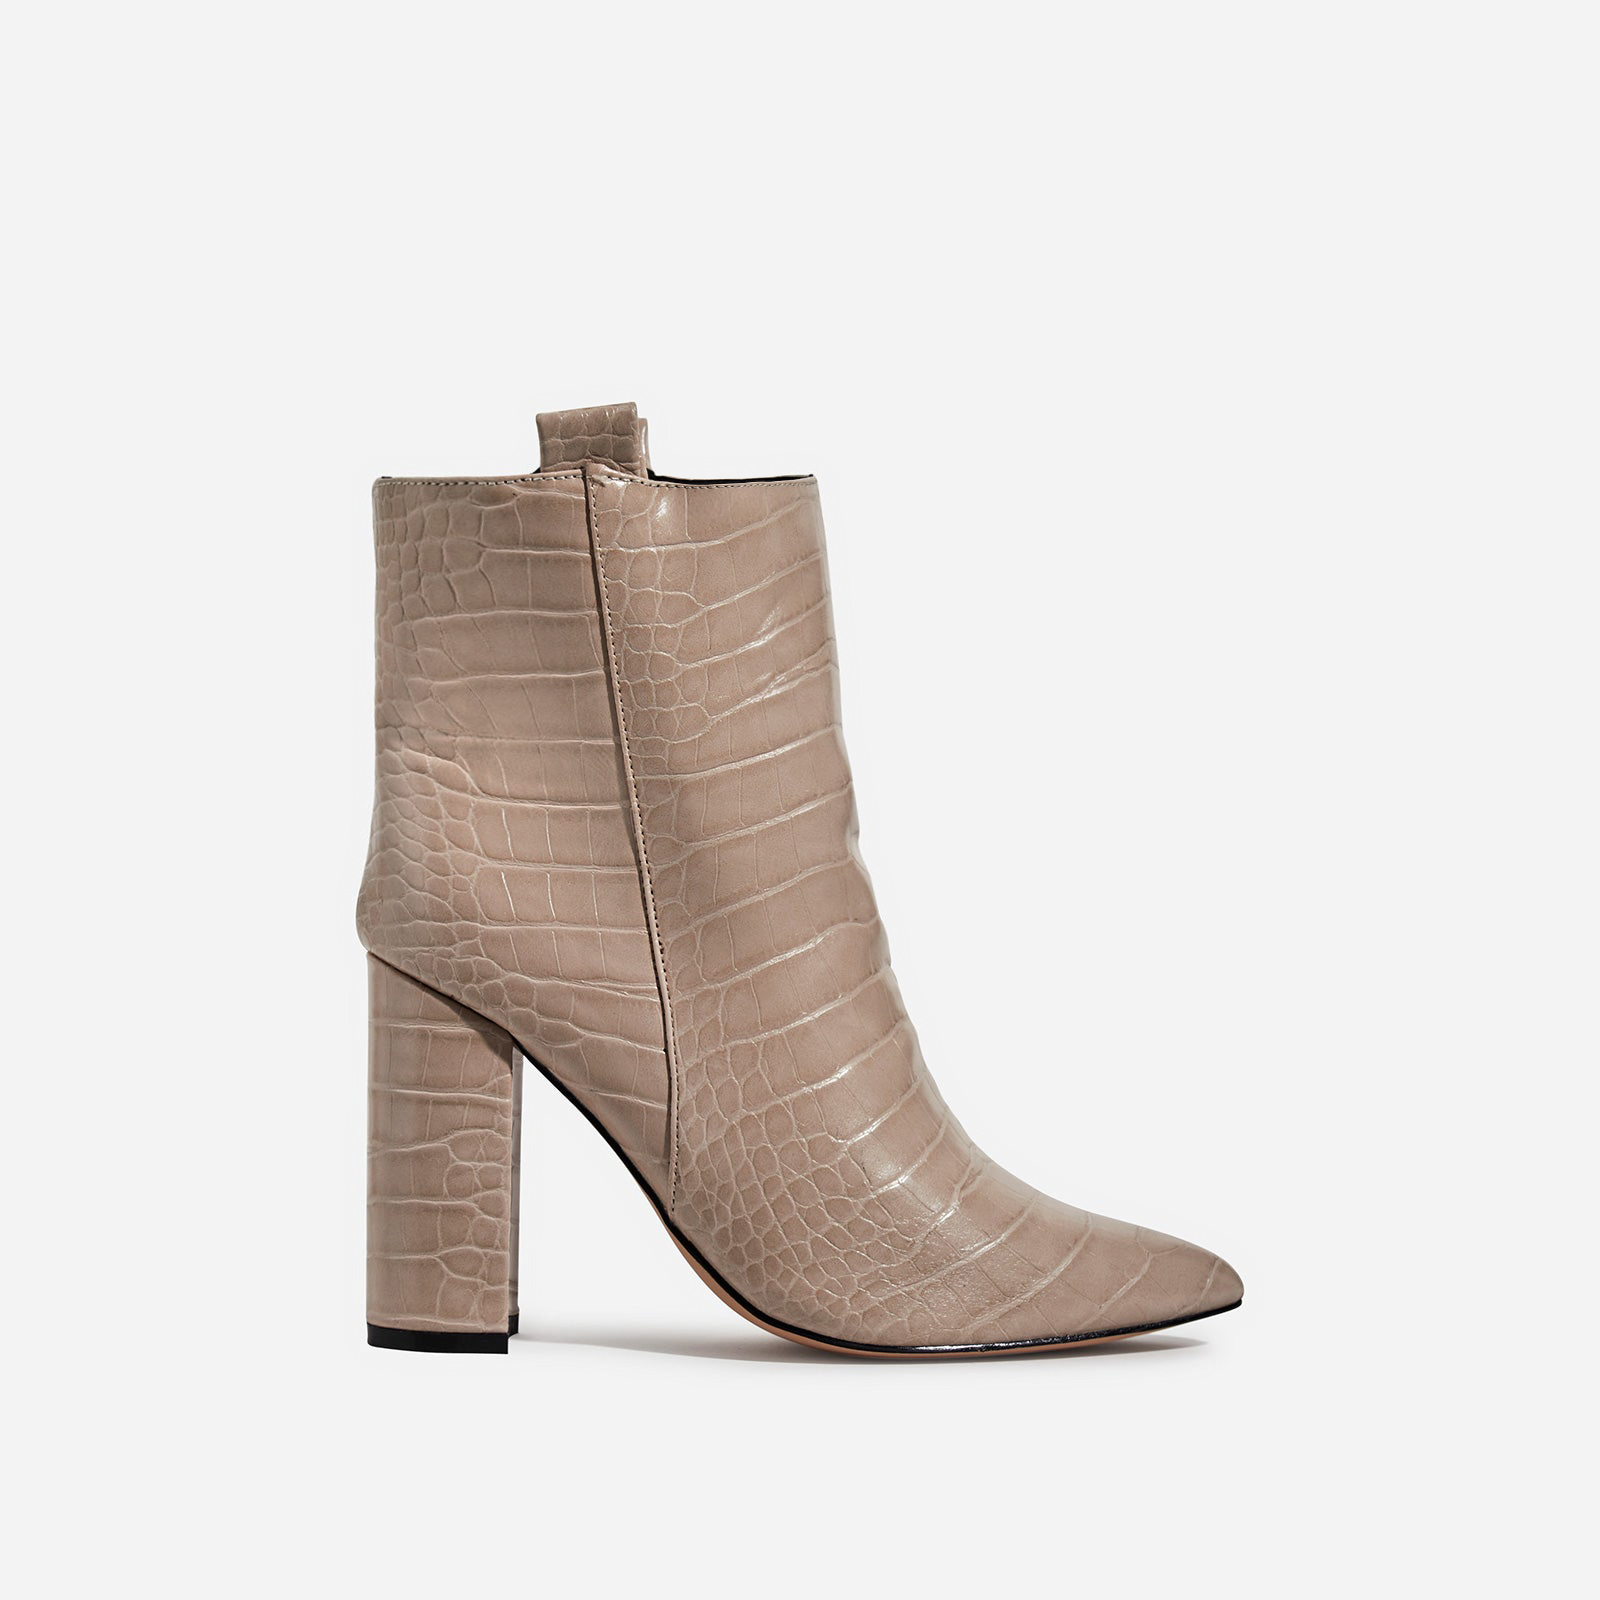 Monterey Block Heel Ankle Boot In Nude Croc Print Faux Leather